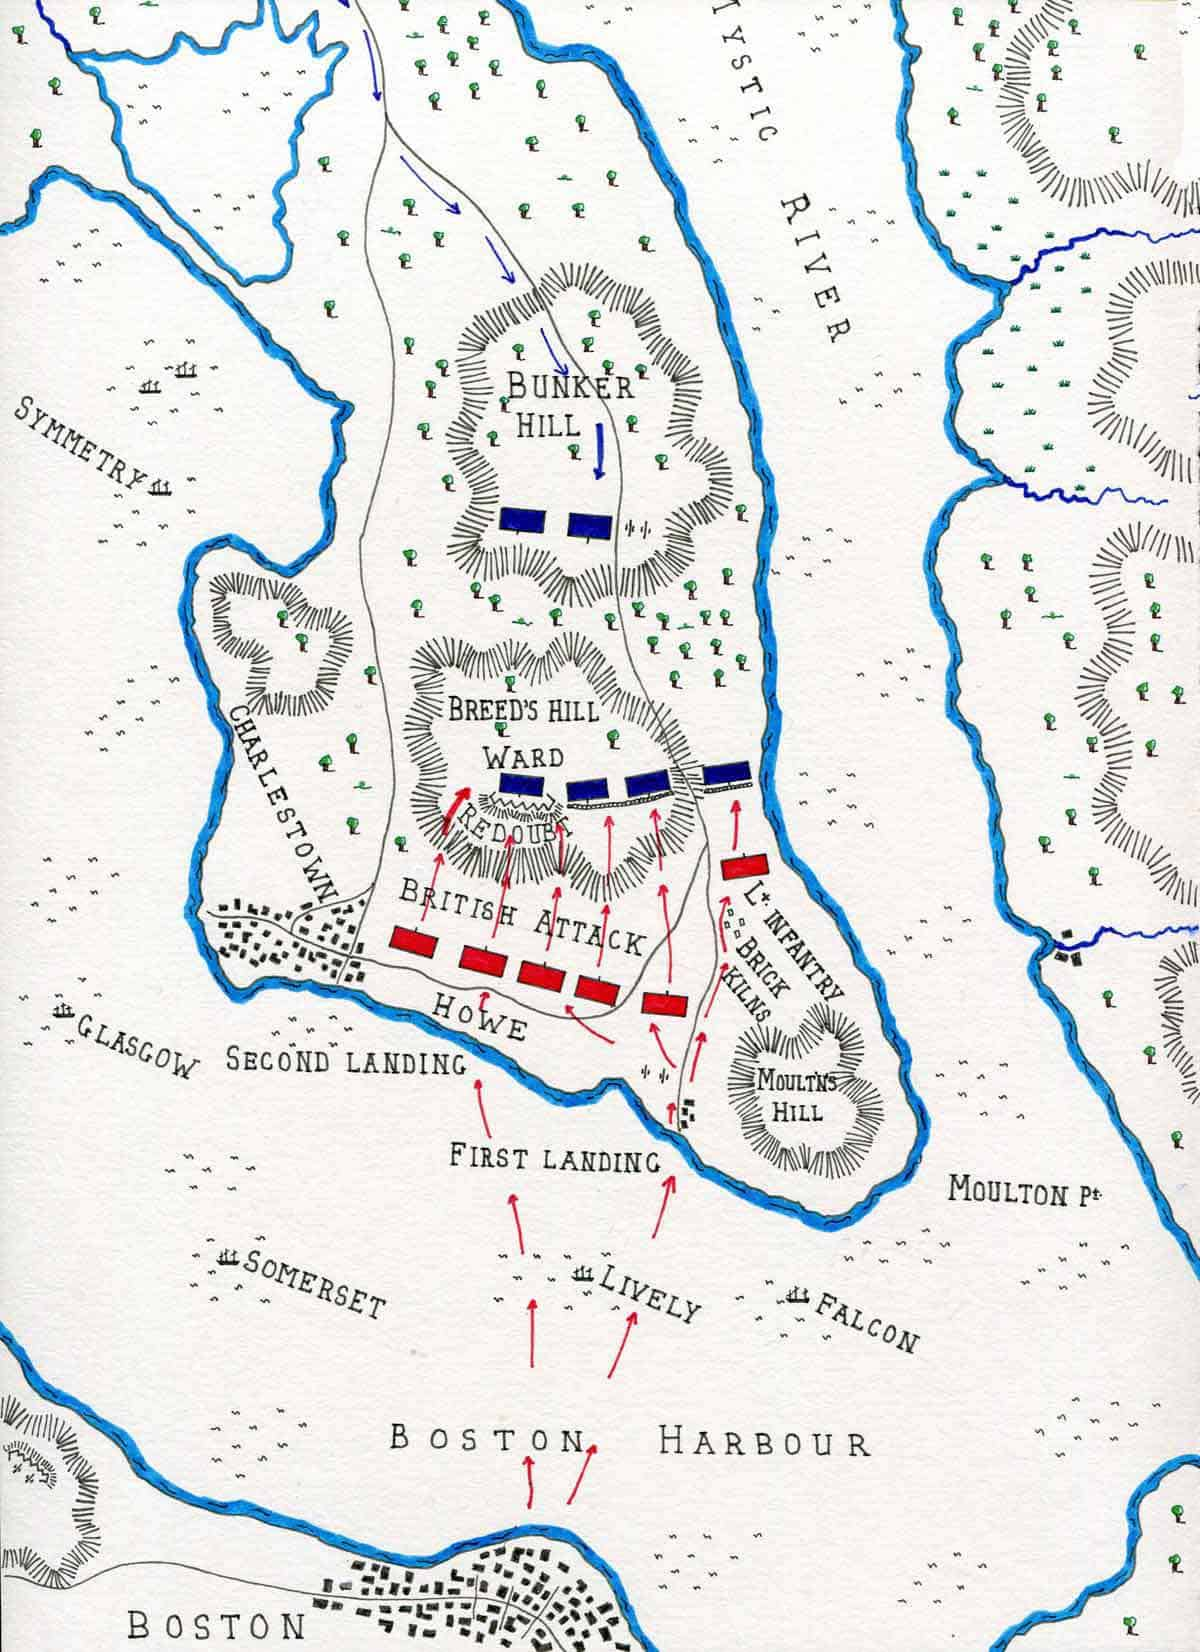 The Battle Of Bunker Hill June 17 At Charlestown